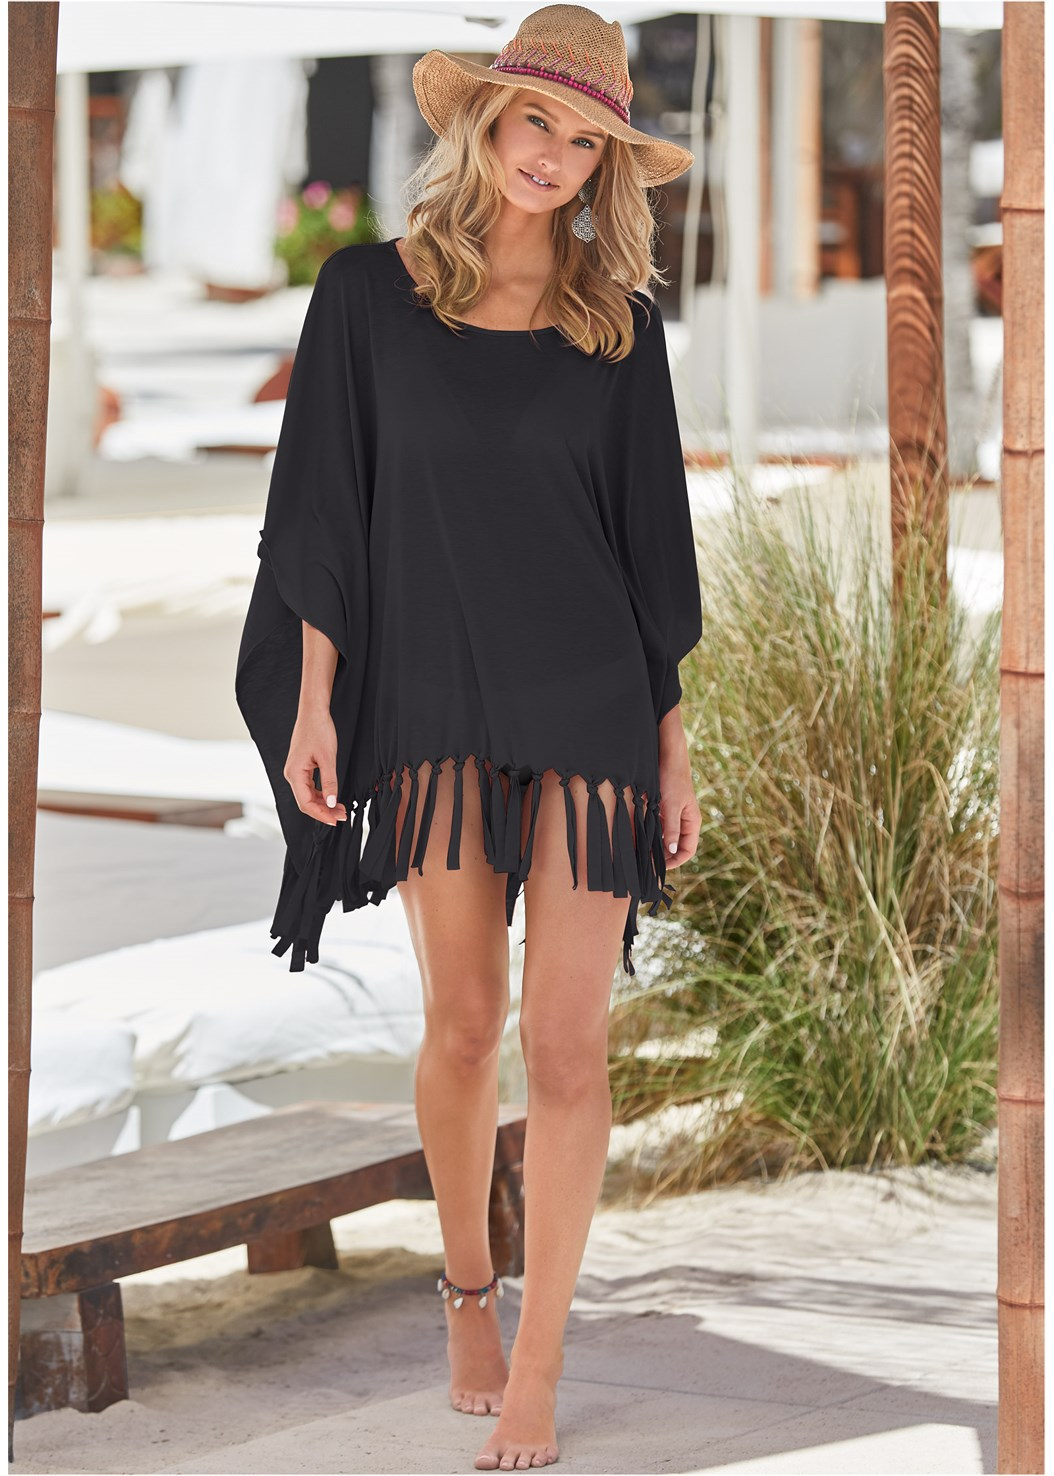 Fringe Detail Cover-Up,Marilyn Underwire Push Up Halter Top,Wrapped Mid Rise Bottom